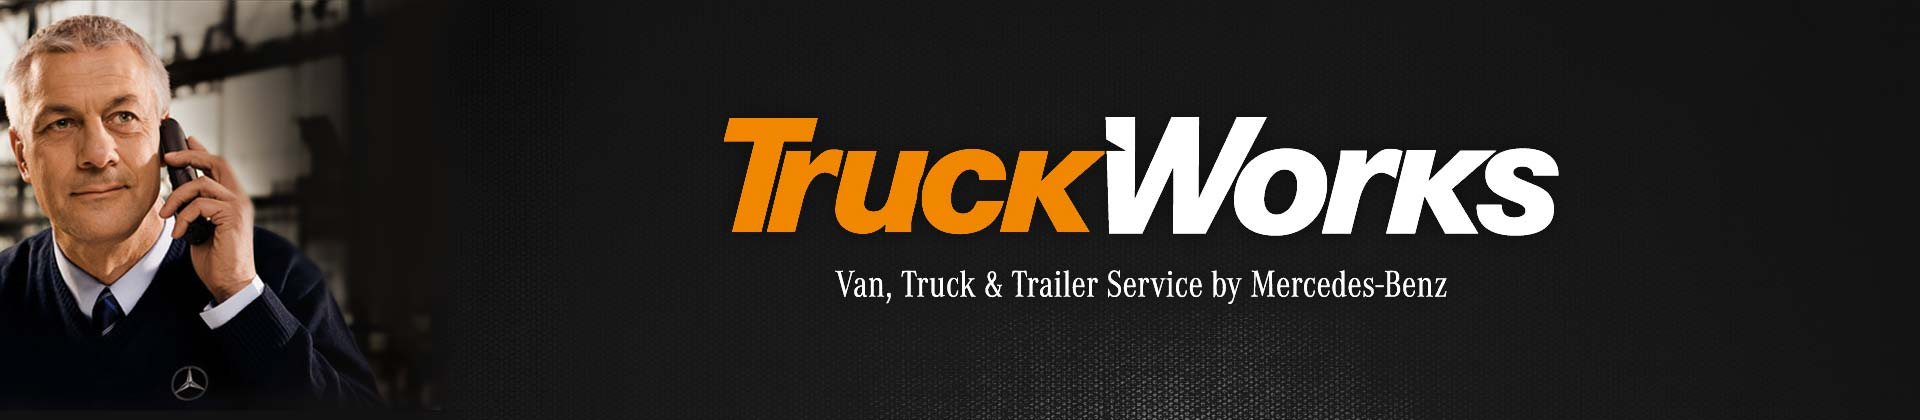 TruckWorks bei Autohaus Anders